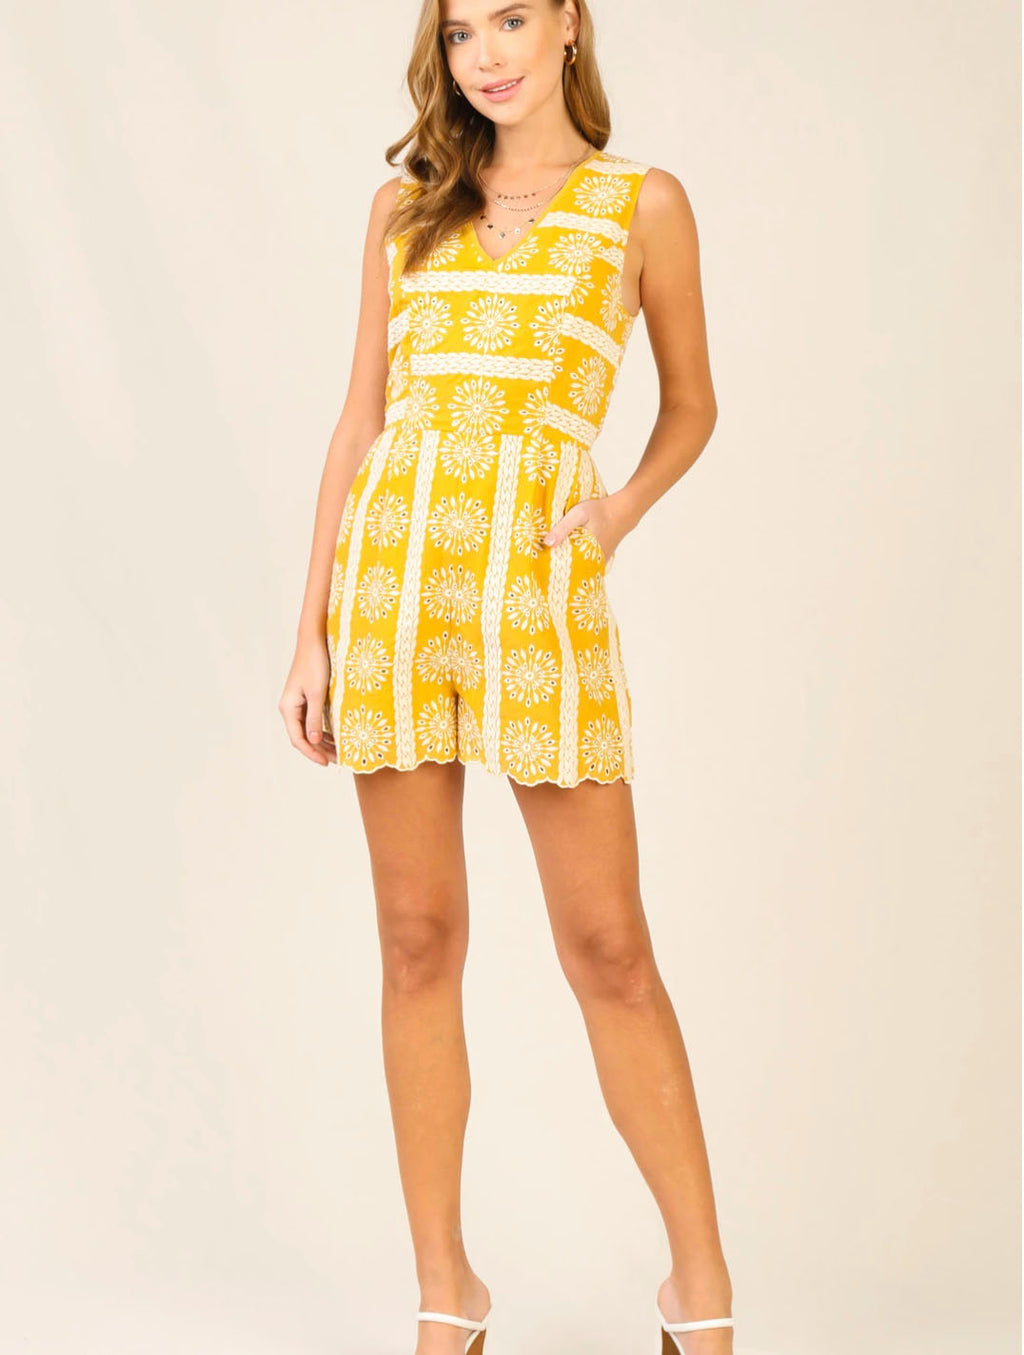 Skies Are Blue Eyelet Lace Romper in Yellow